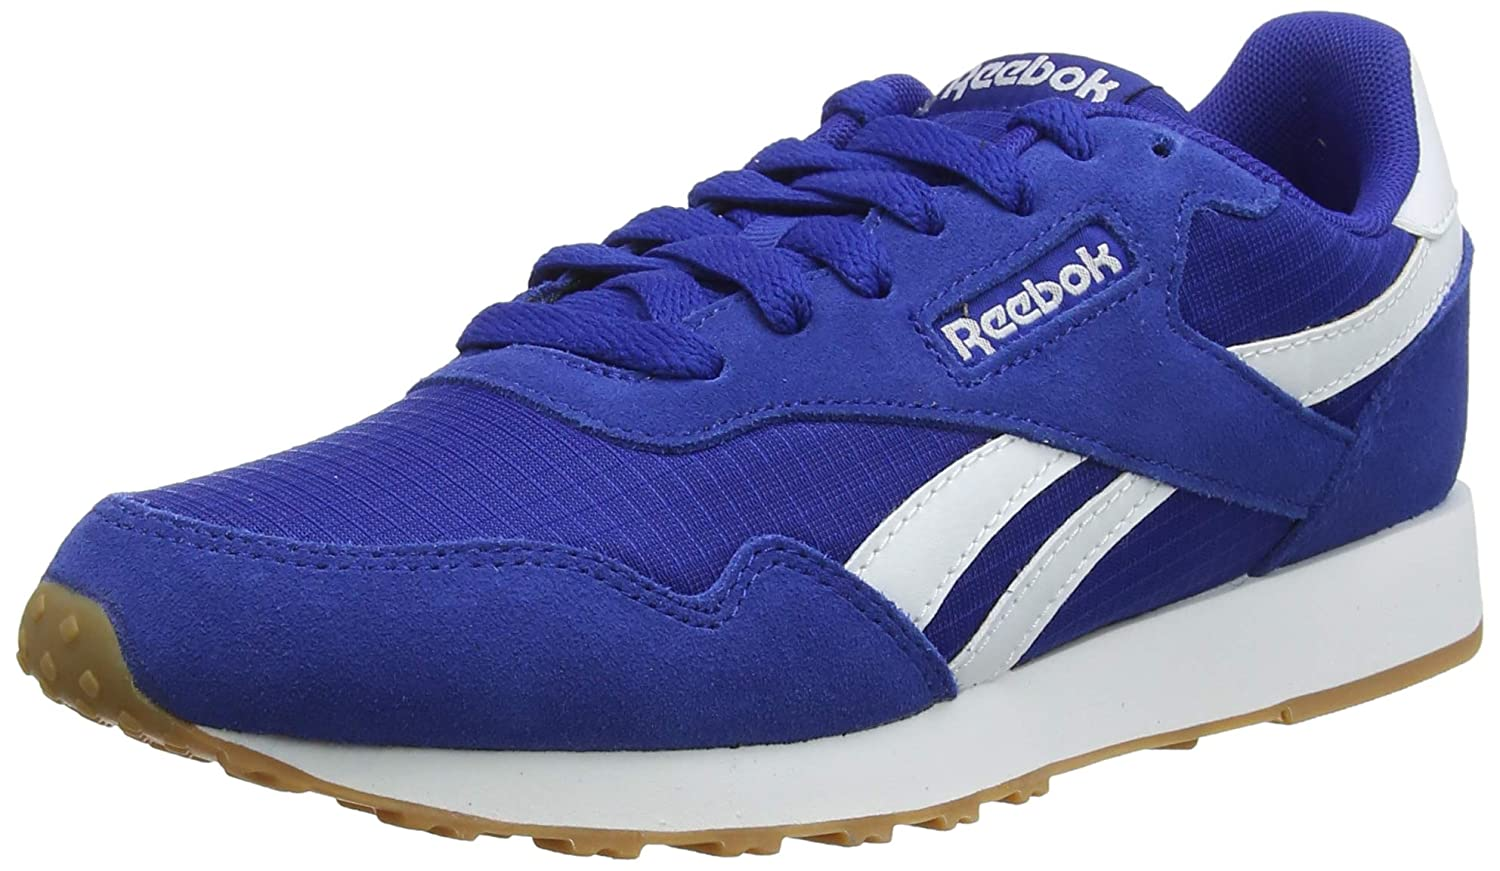 MultiCouleure (Collegiate Royal blanc Gum 000) 37.5 EU Reebok Royal Ultra, Chaussures de Fitness garçon